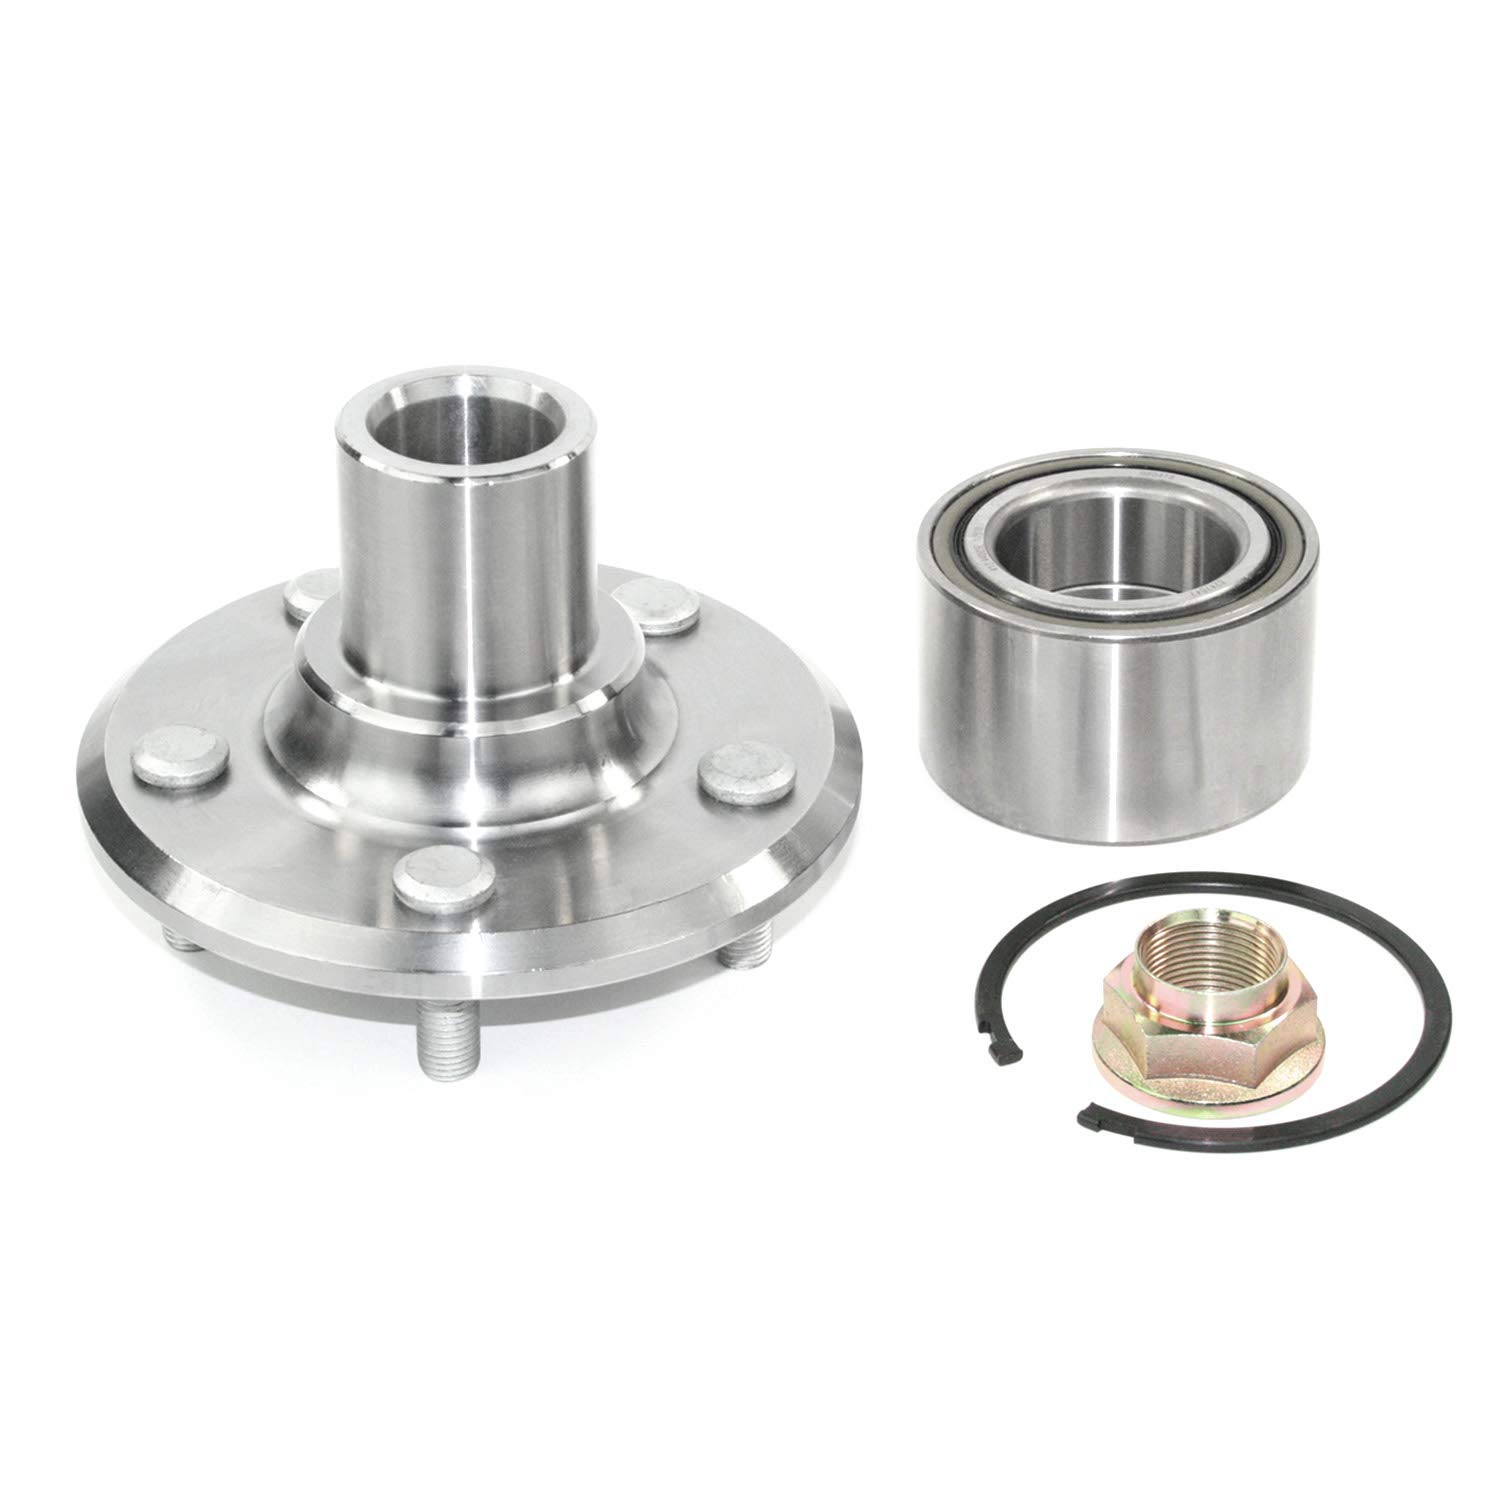 DuraGo 29596130 Rear Wheel Hub Kit